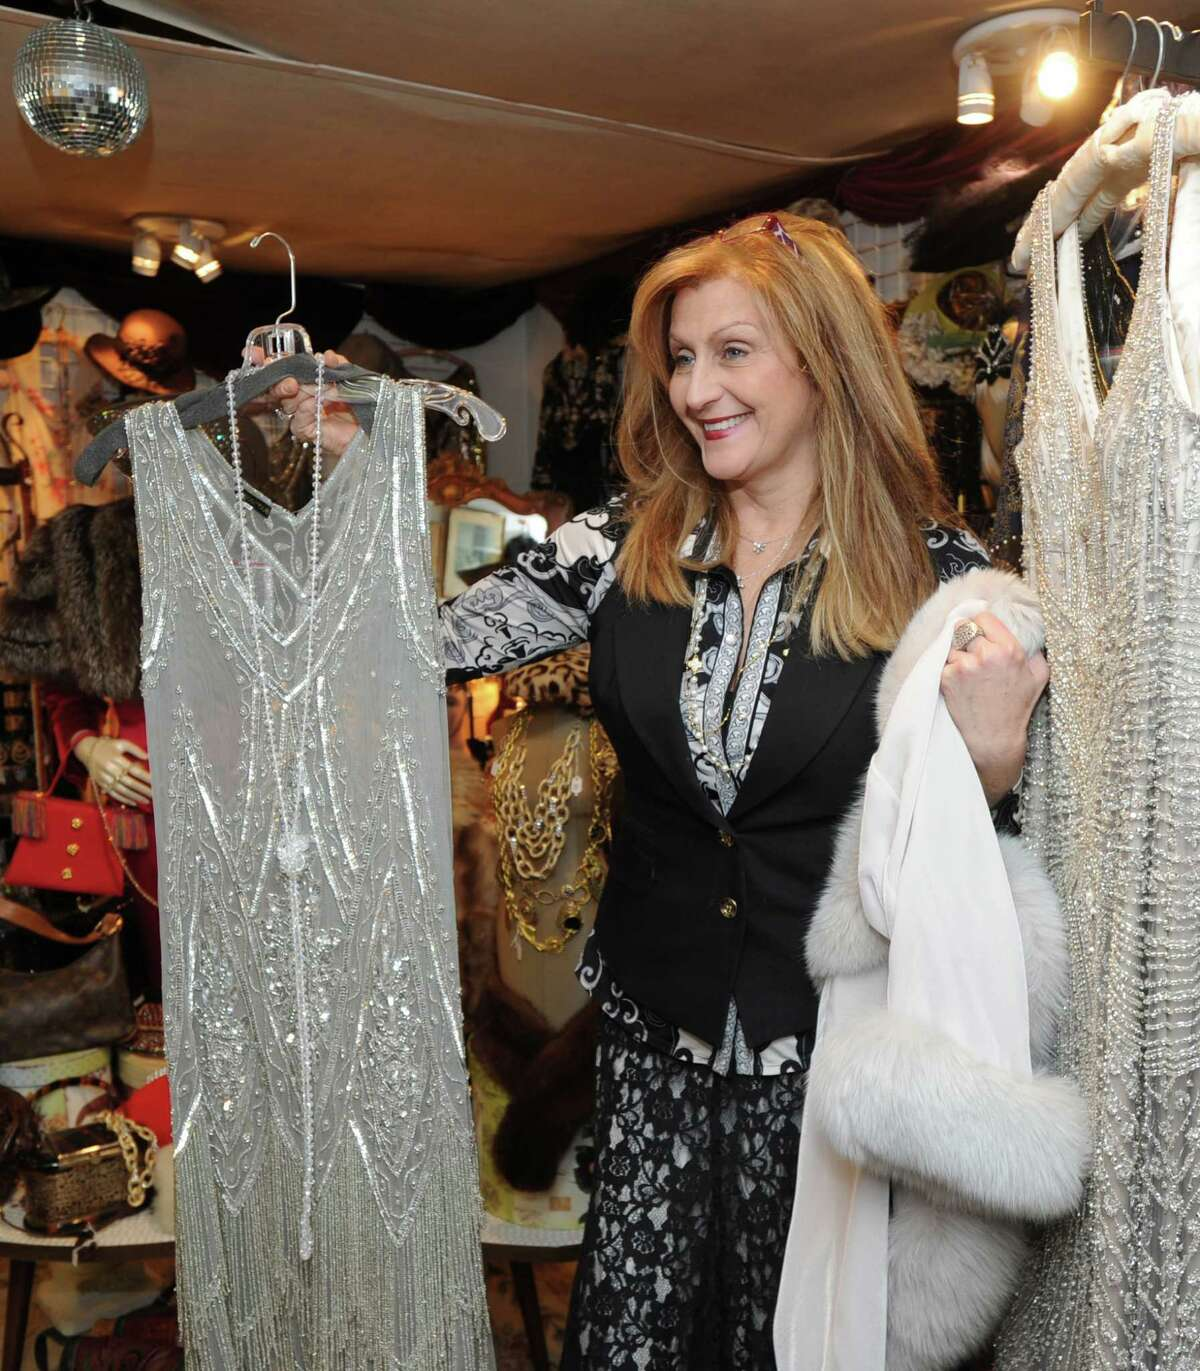 Sophia Scarpelli, owner of Sophia's Costumes in Greenwich, Conn., Tuesday, Jan. 20, 2015, displays an authentic flapper dress at her store. The authentic and vintage costume shop is located at 1 Liberty Way in central Greenwich and has been in business for over 30 years.